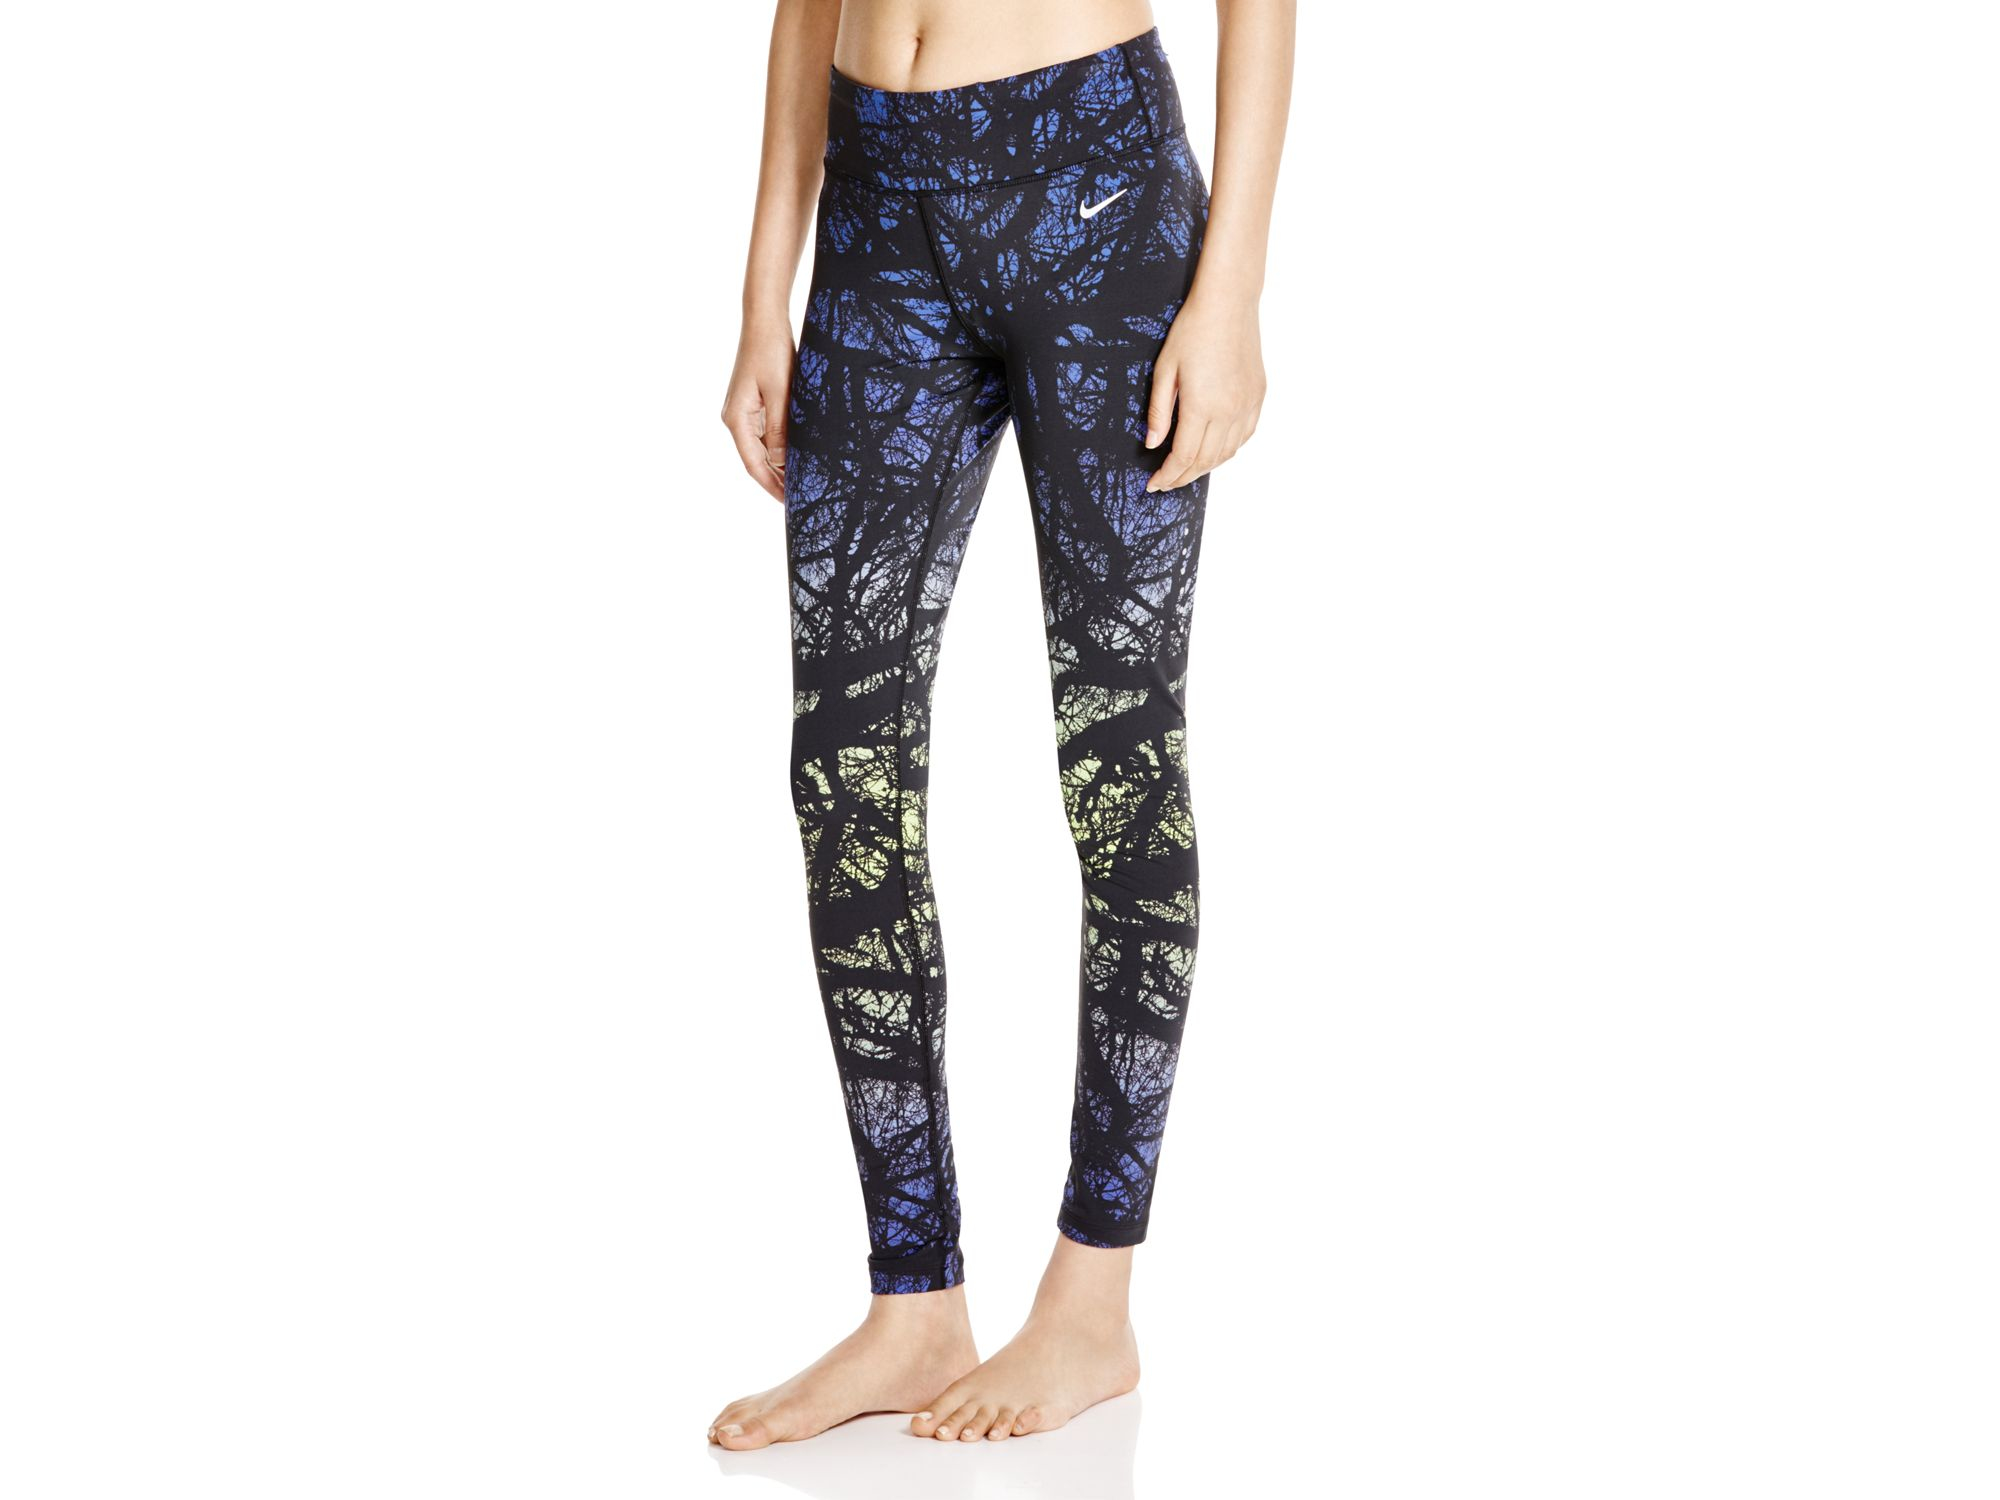 cool printed leggings hardon clothes